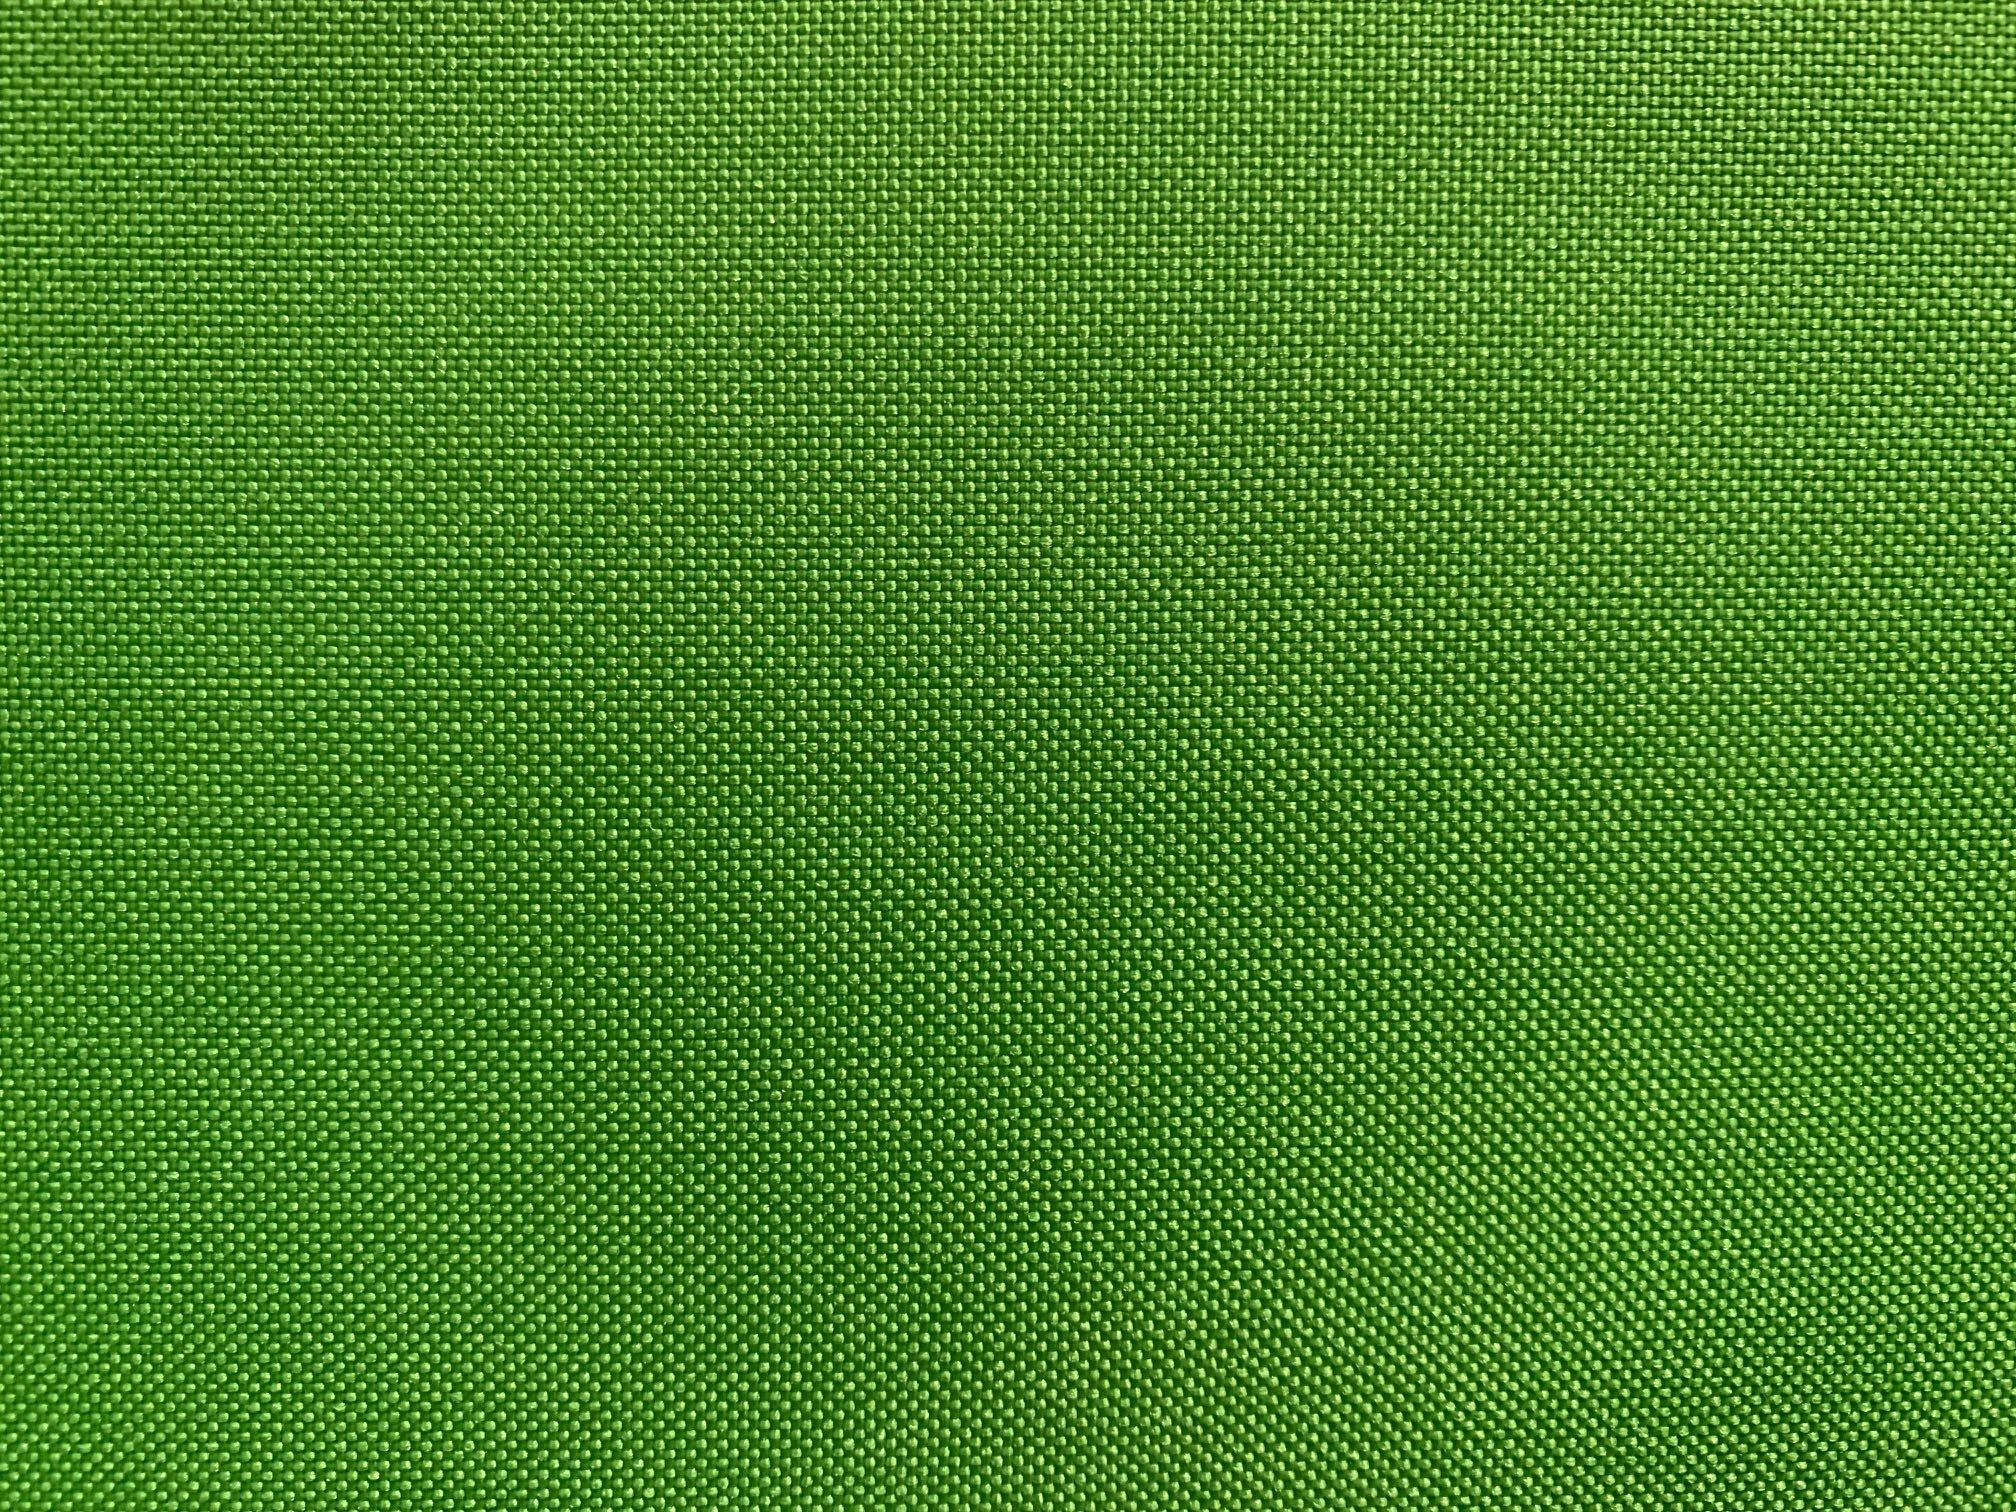 Glide Gear GS-003 Motorized Collapsible Retractable 7x7 Wall Hanging Chromakey Green Screen by Glide Gear